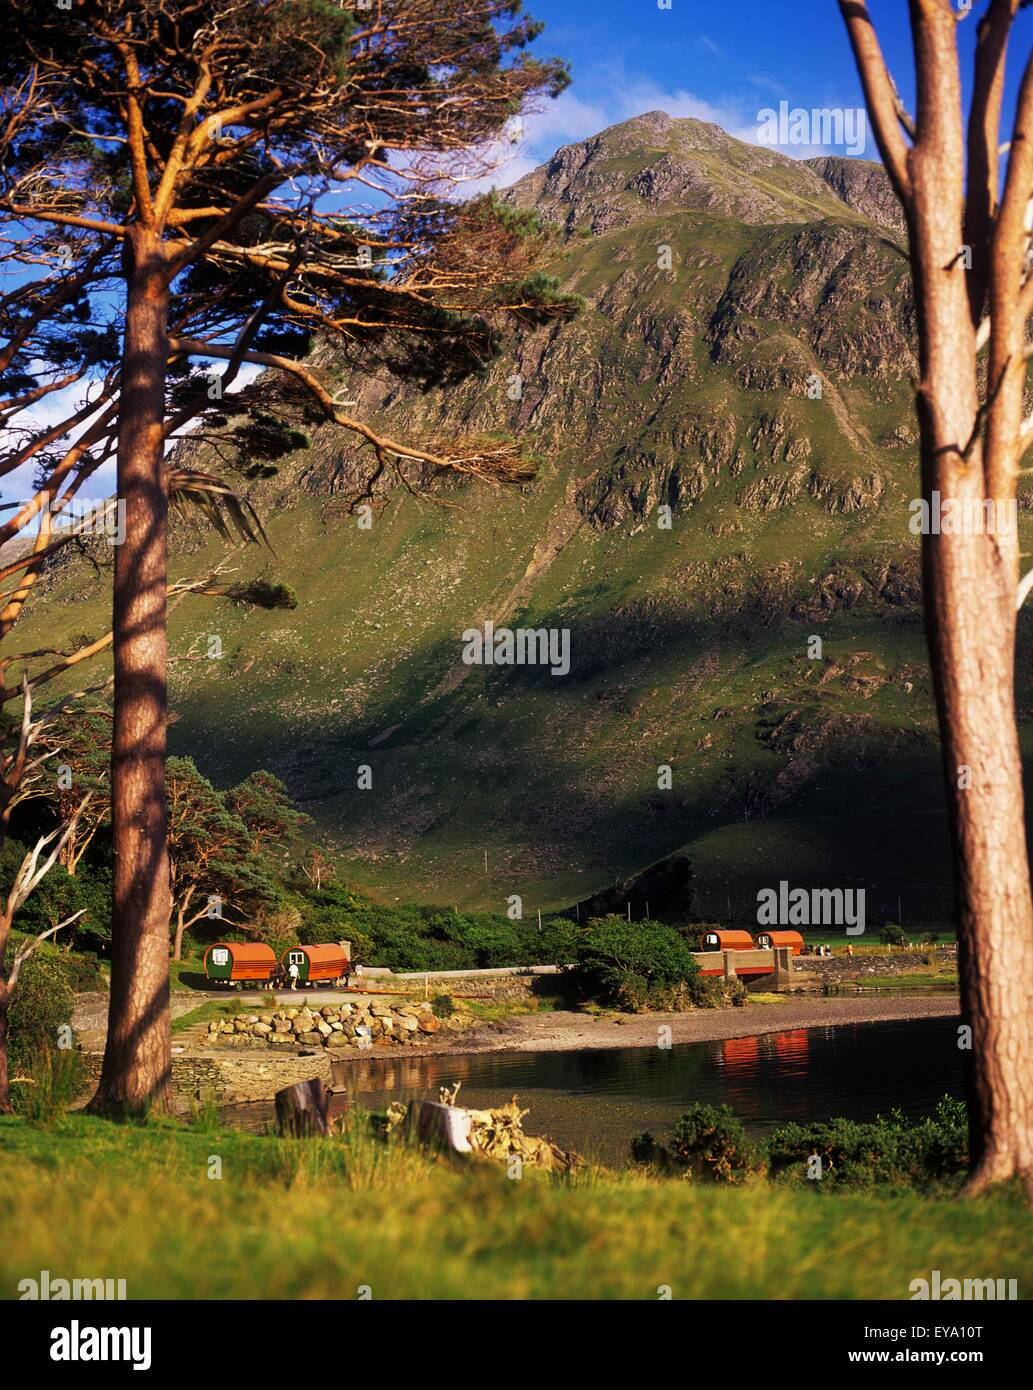 Mobile Homes At A Lakeside In Front Of A Mountain, Doo Lough Pass, County Mayo, Republic Of Ireland - Stock Image